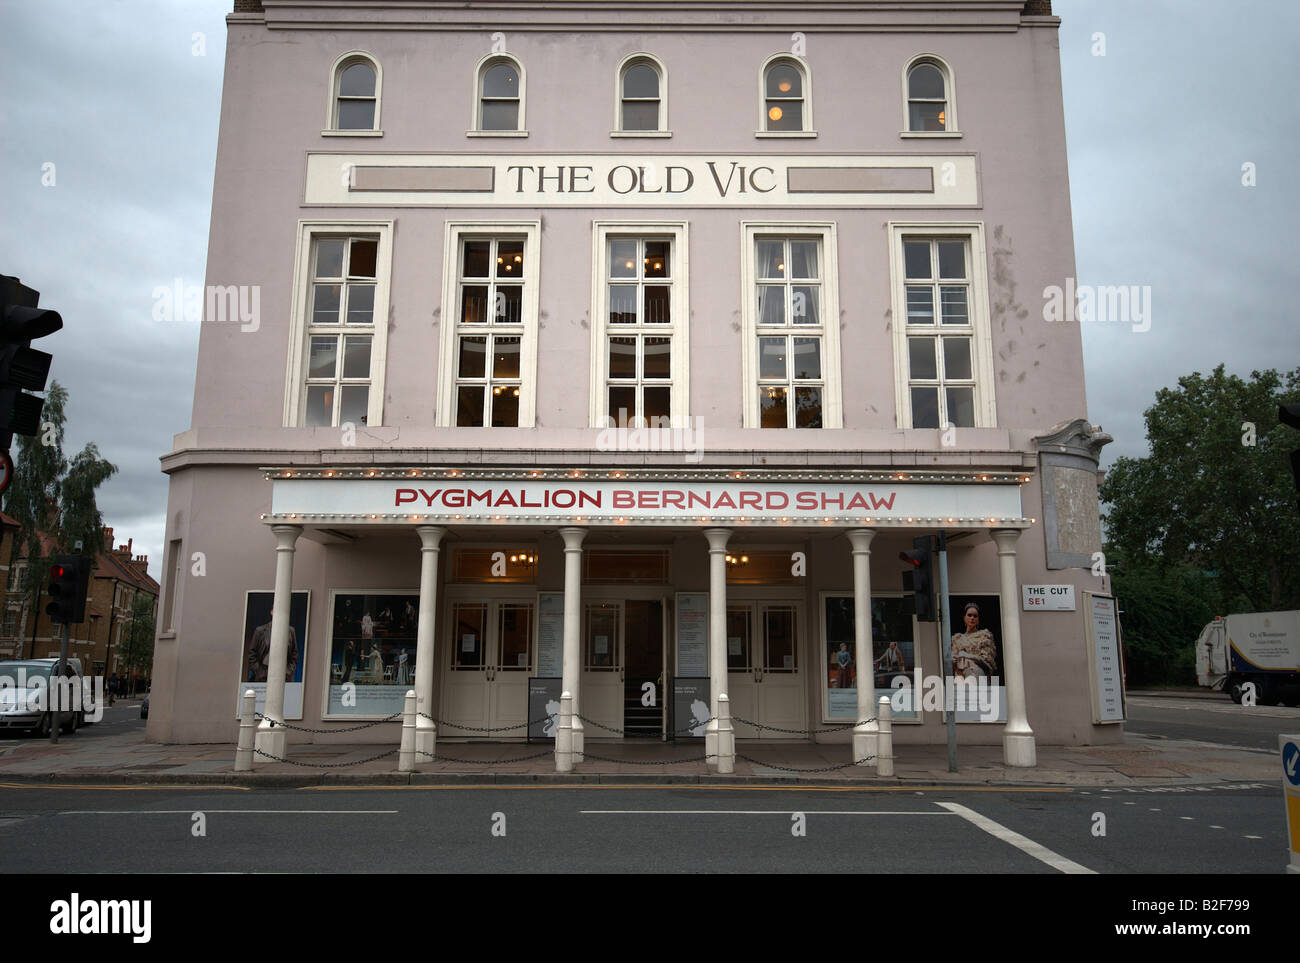 The Old Vic theatre in London. - Stock Image